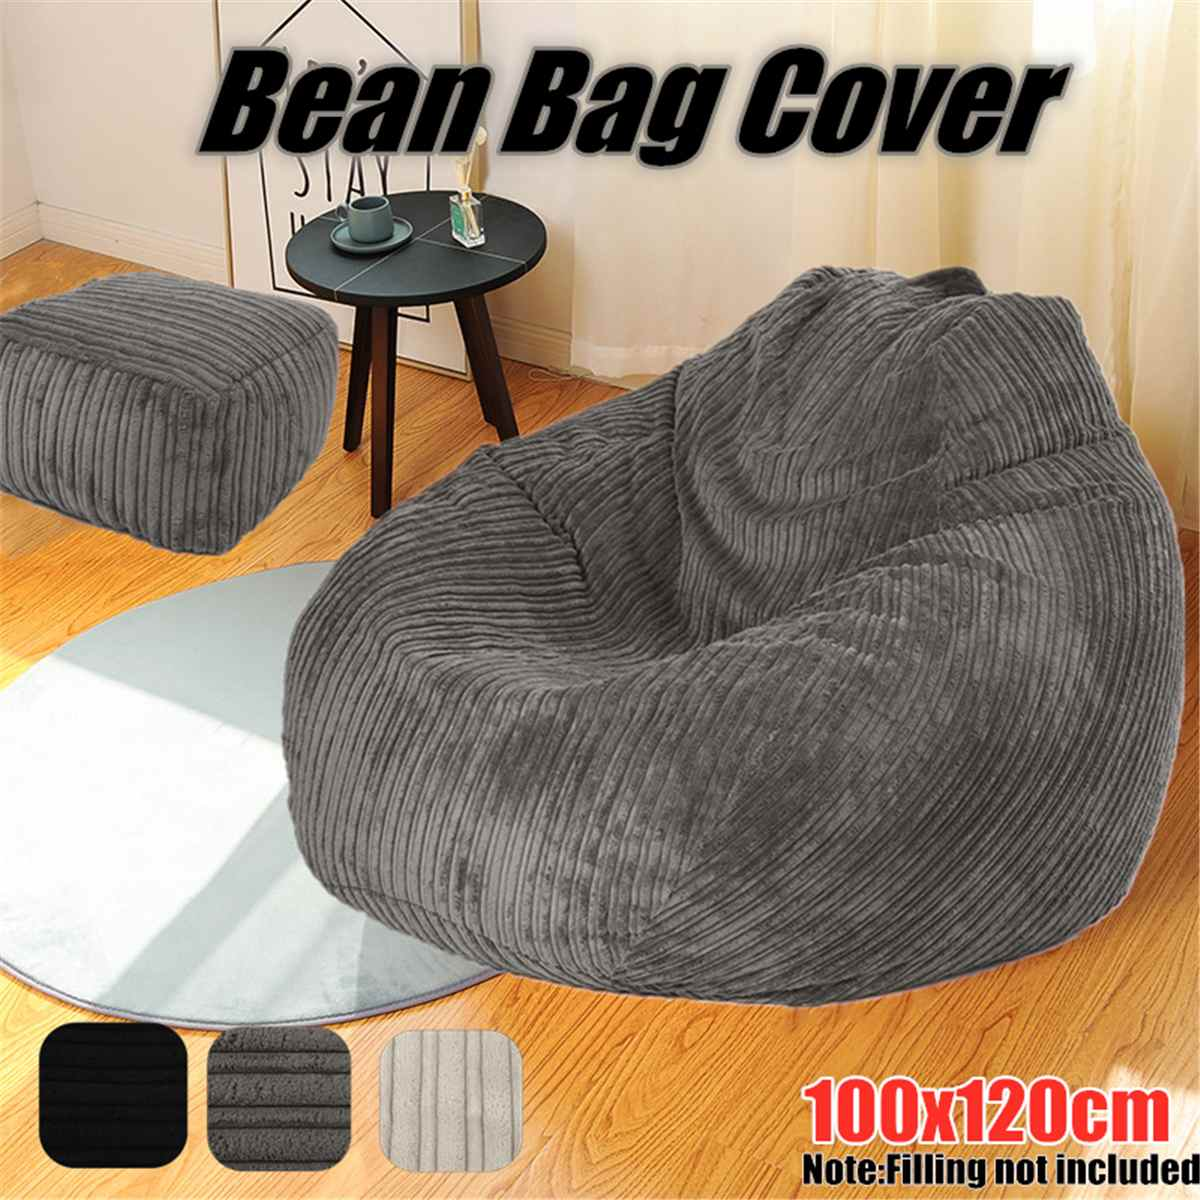 Large Lazy BeanBag Sofas Cover Chairs without Filler  Corduroy Lounger Seat Bean Bag Pouf Puff Couch Tatami Living Room Grey car seat